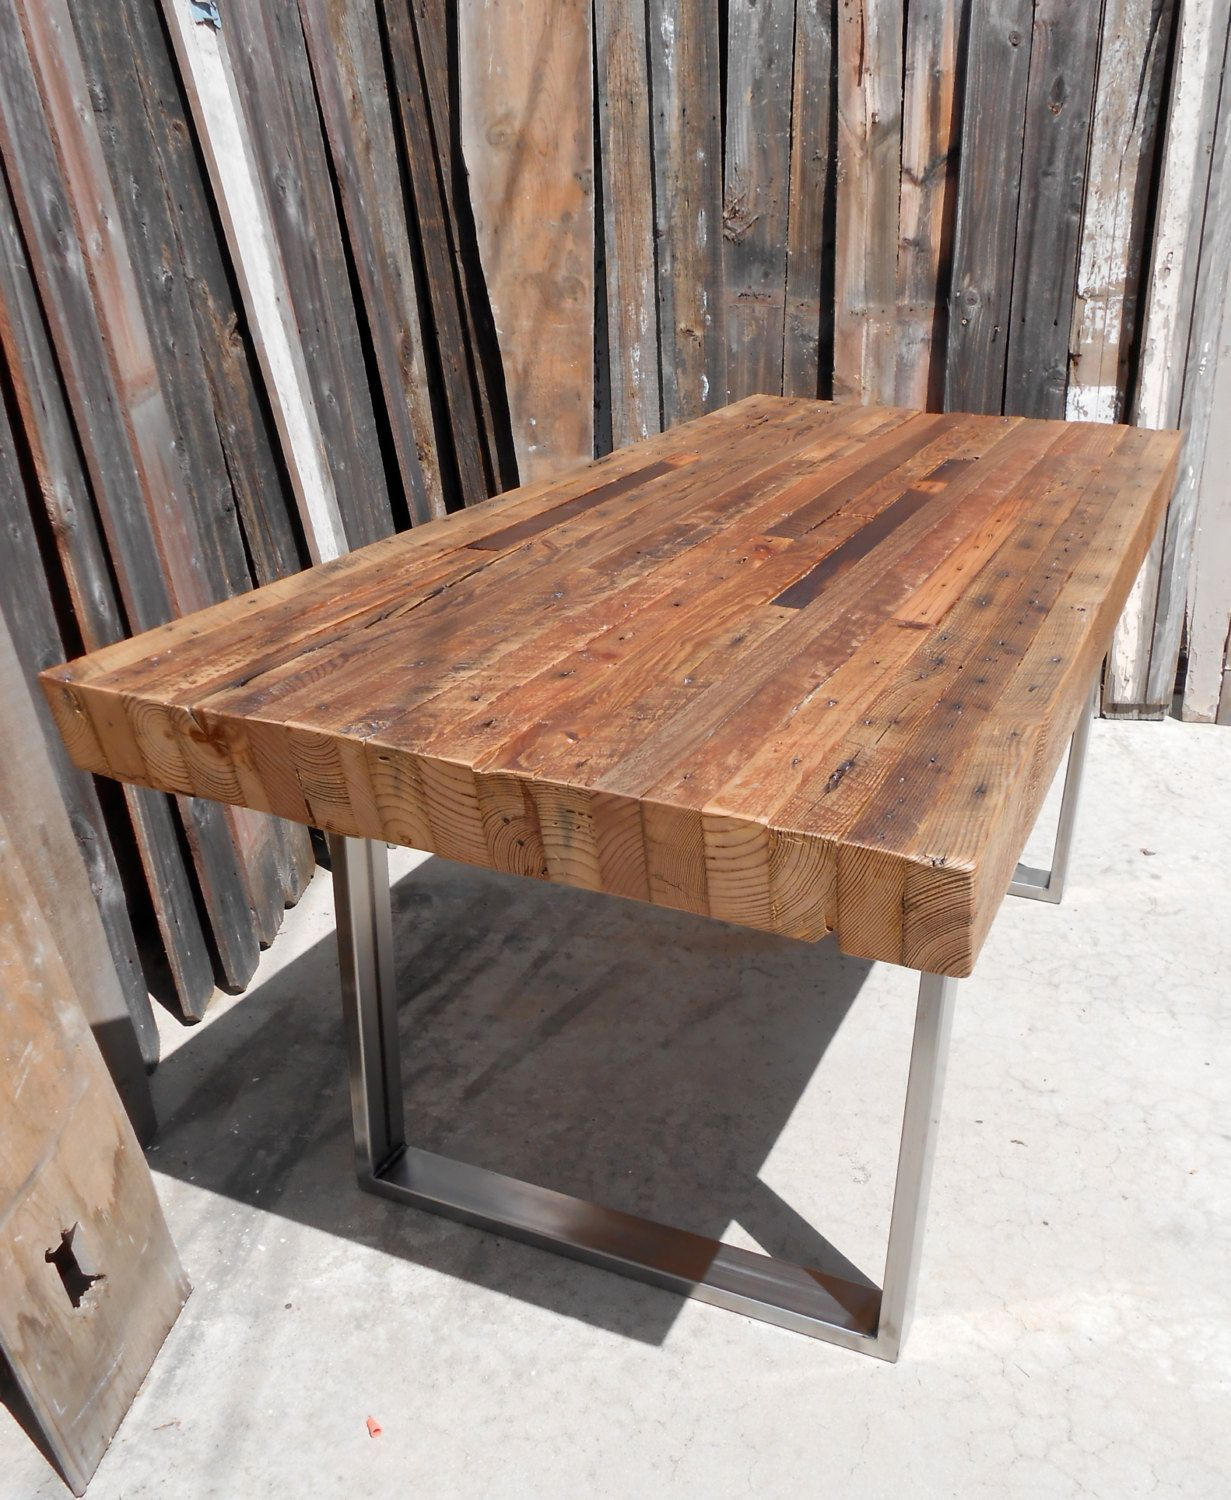 Dining table  Custom Outdoor  Indoor Rustic Industrial Reclaimed Wood  Dining Table   CoffeeTable. Dining table  Custom Outdoor  Indoor Rustic Industrial Reclaimed